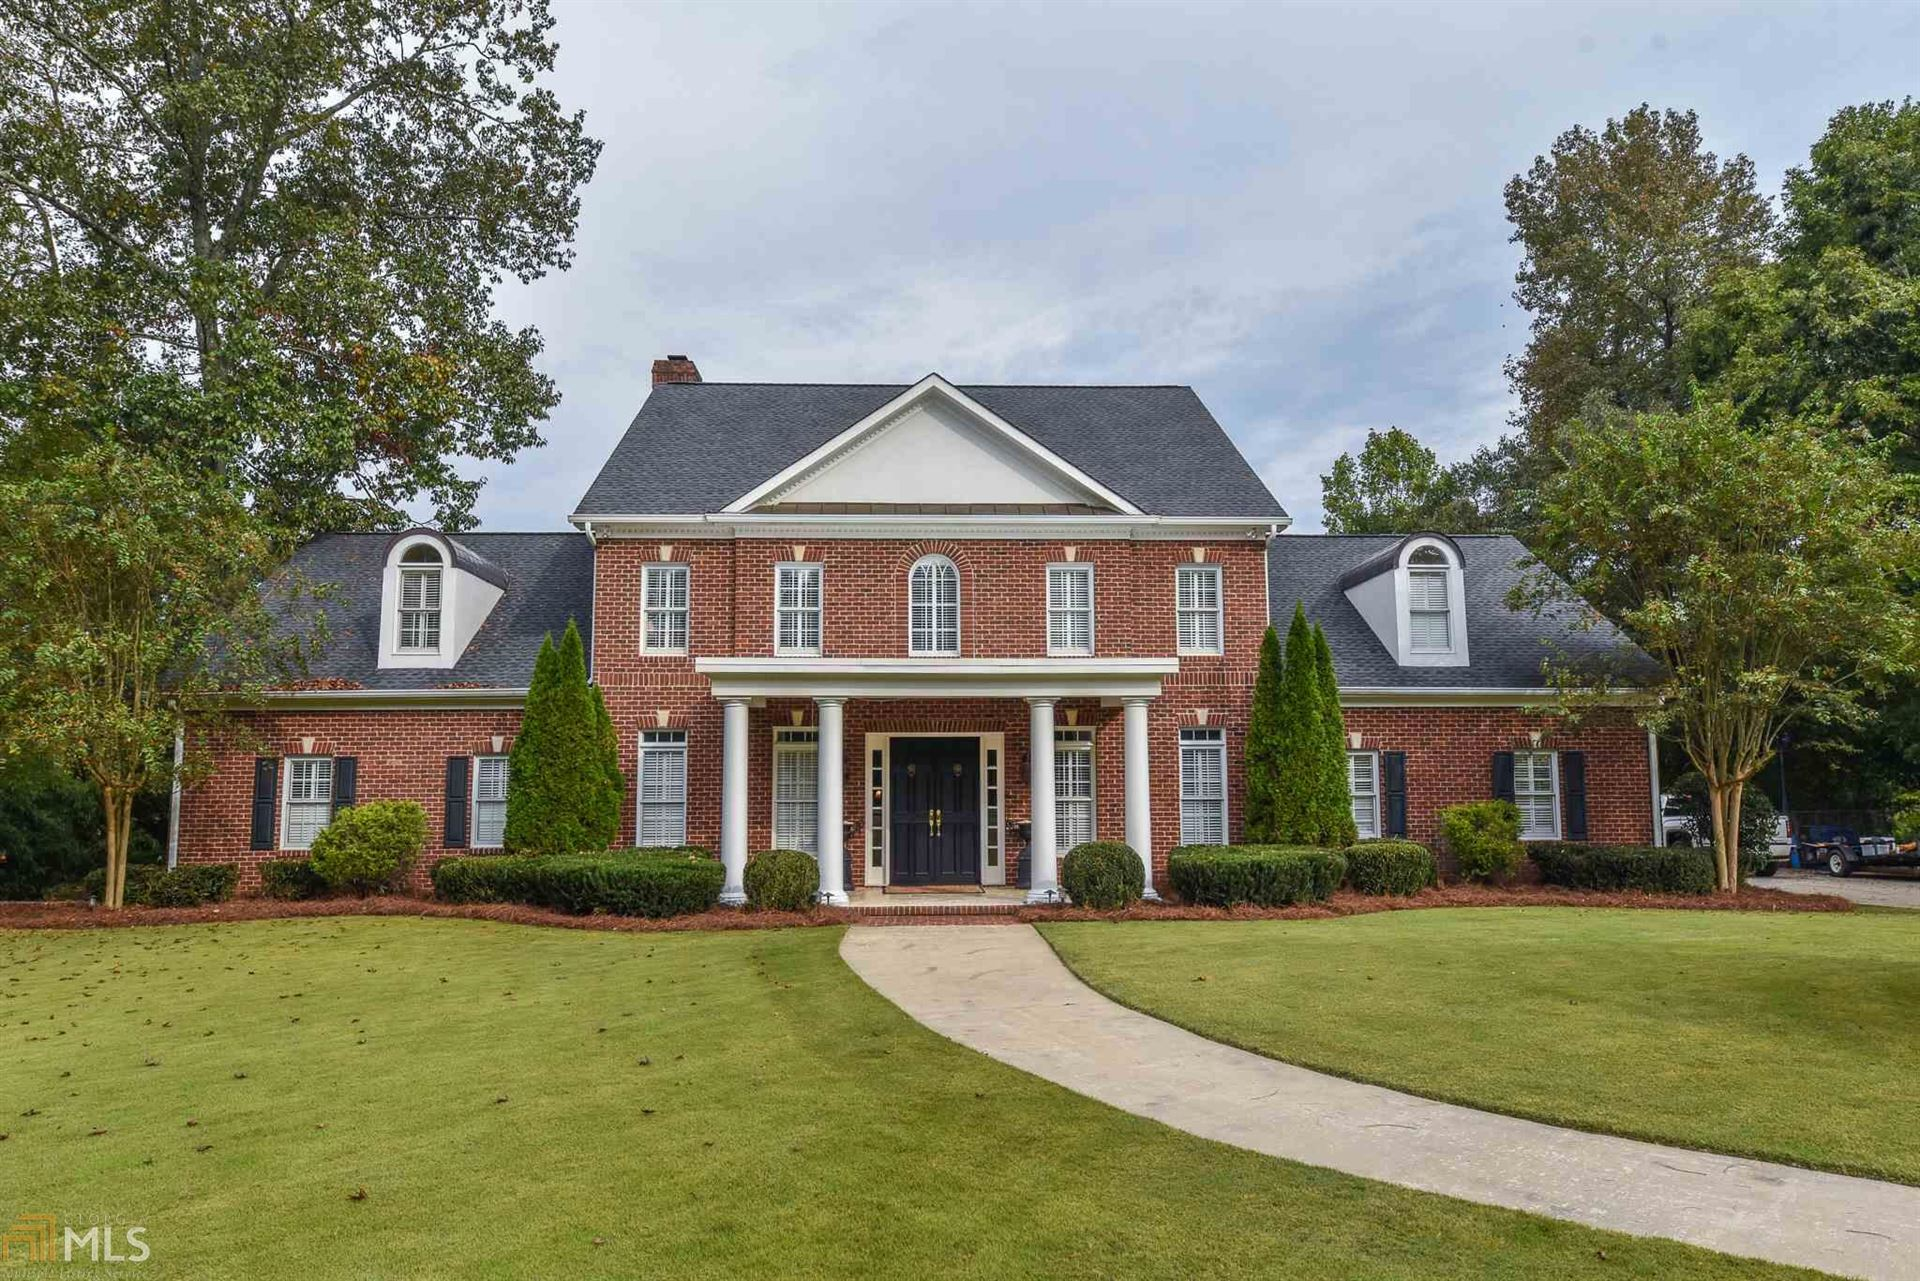 1010 St Andrews Ct, Watkinsville, GA 30677 - MLS#: 8875985